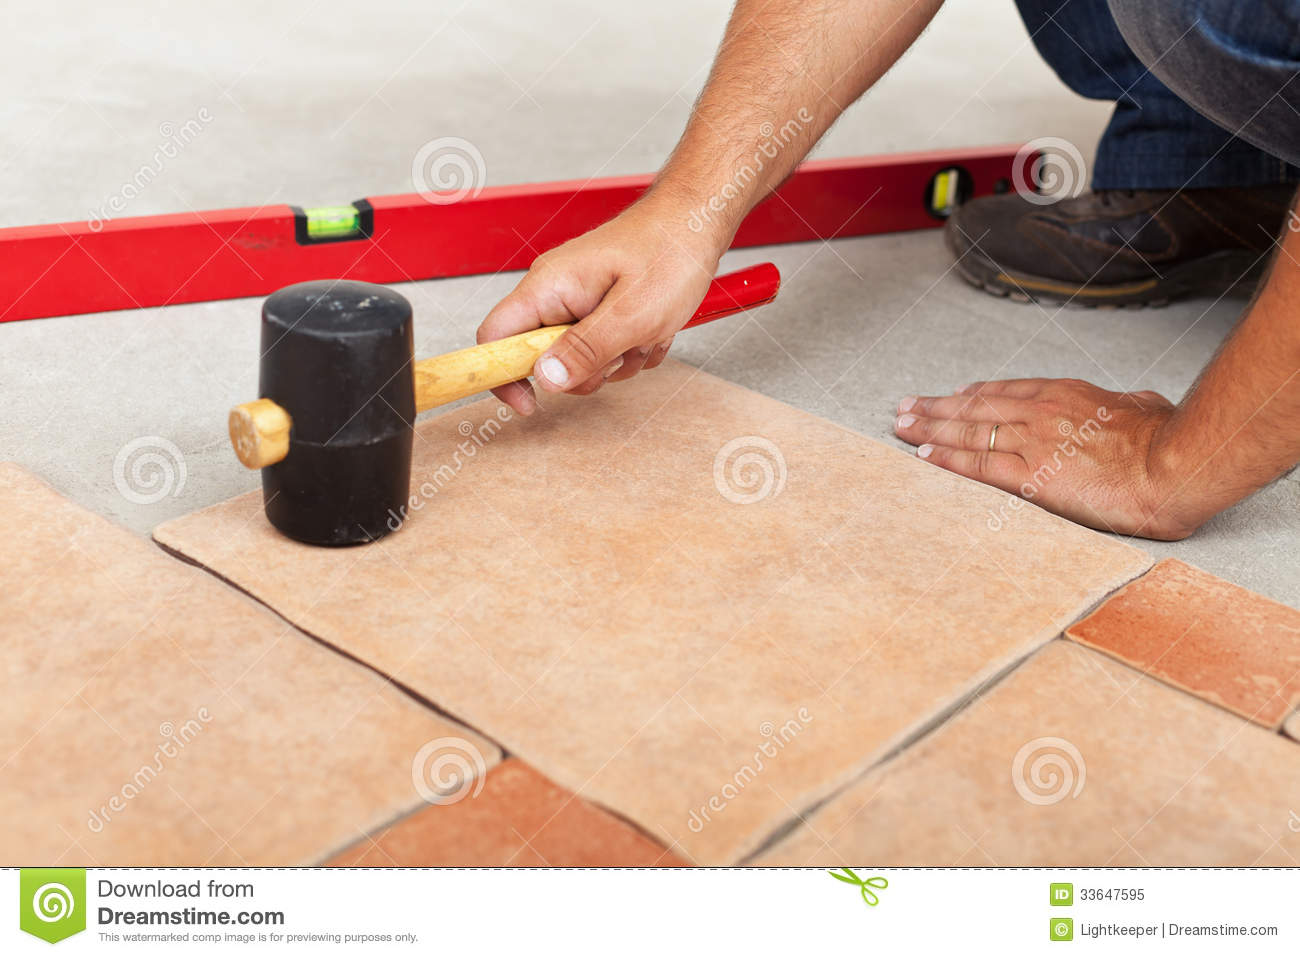 Installing ceramic flooring fitting a tile stock image image installing ceramic flooring fitting a tile dailygadgetfo Gallery